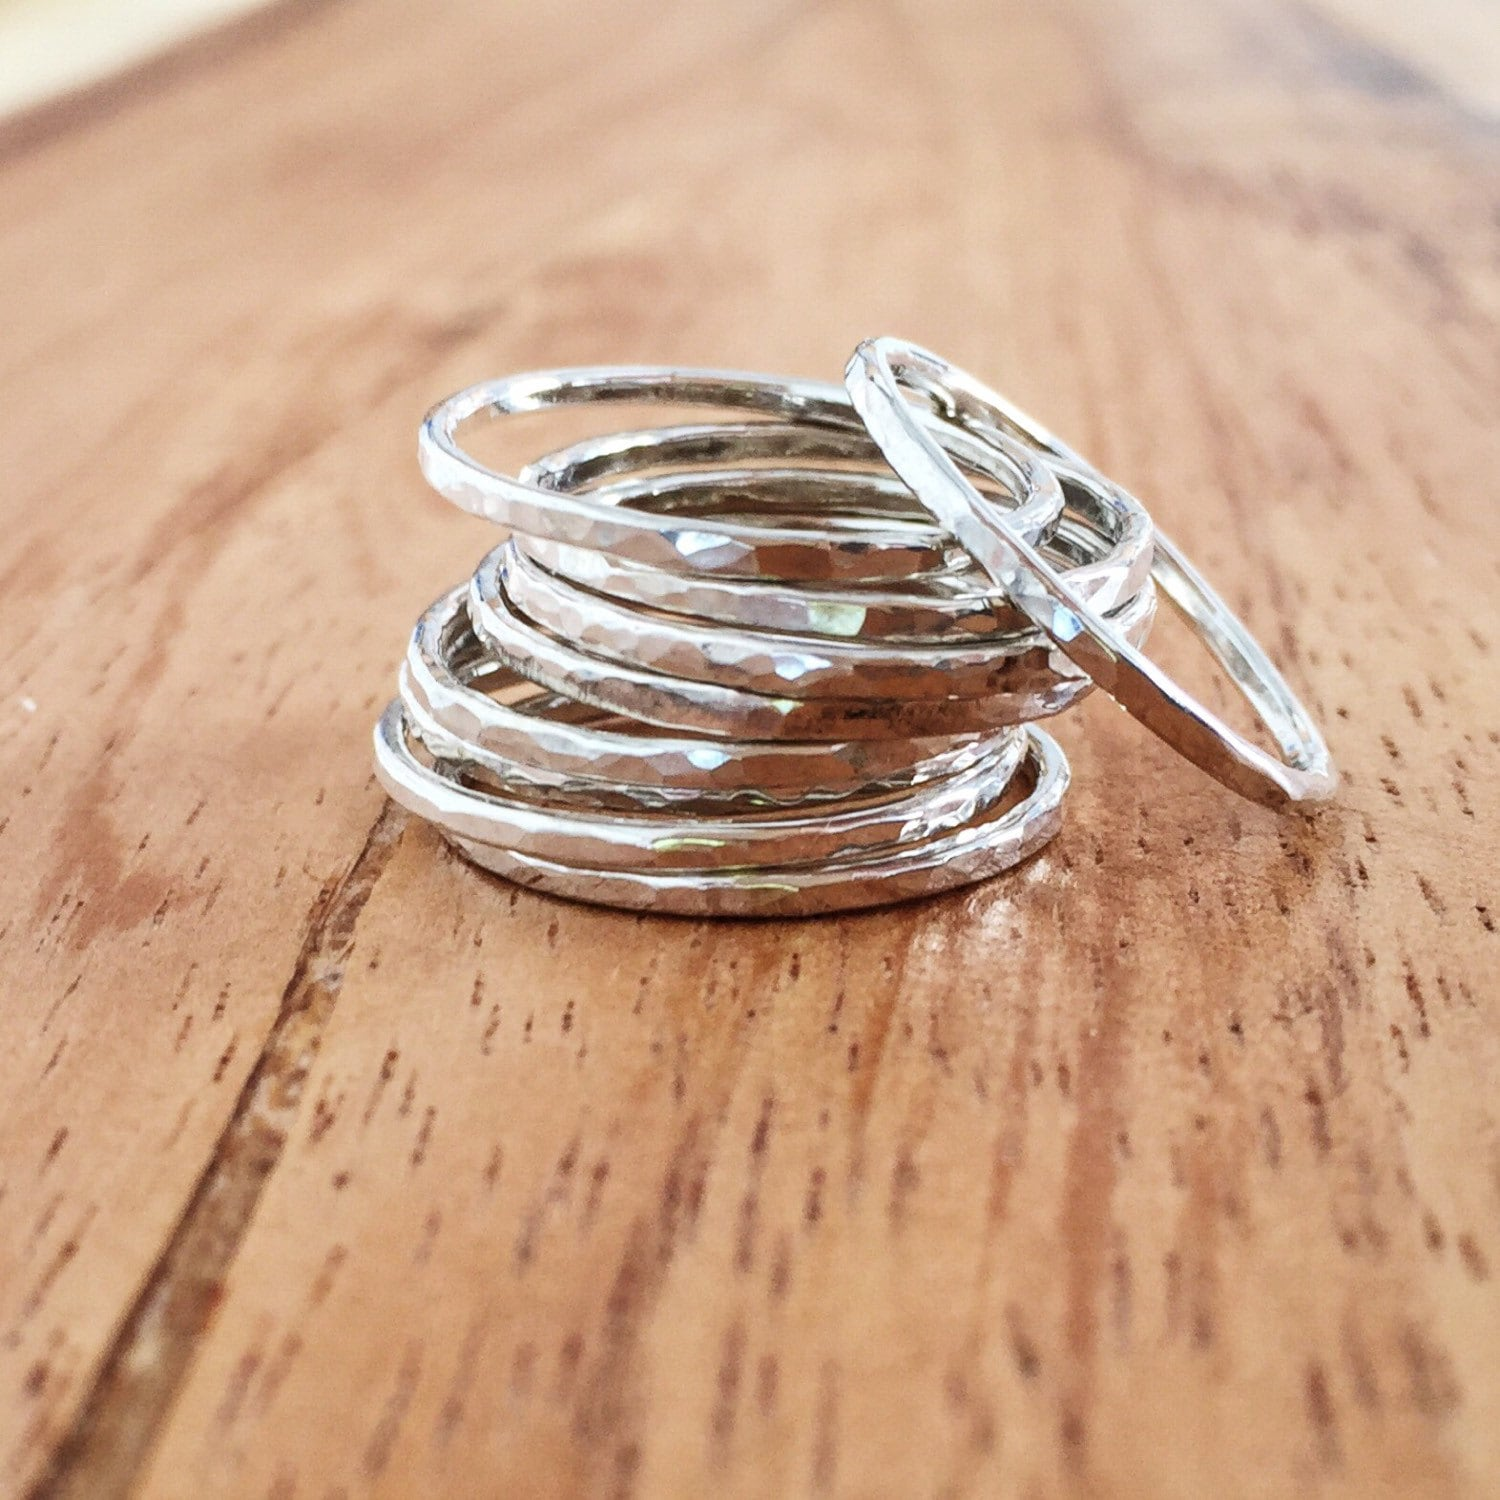 kaiko ring silver rings sterling silver stack ring